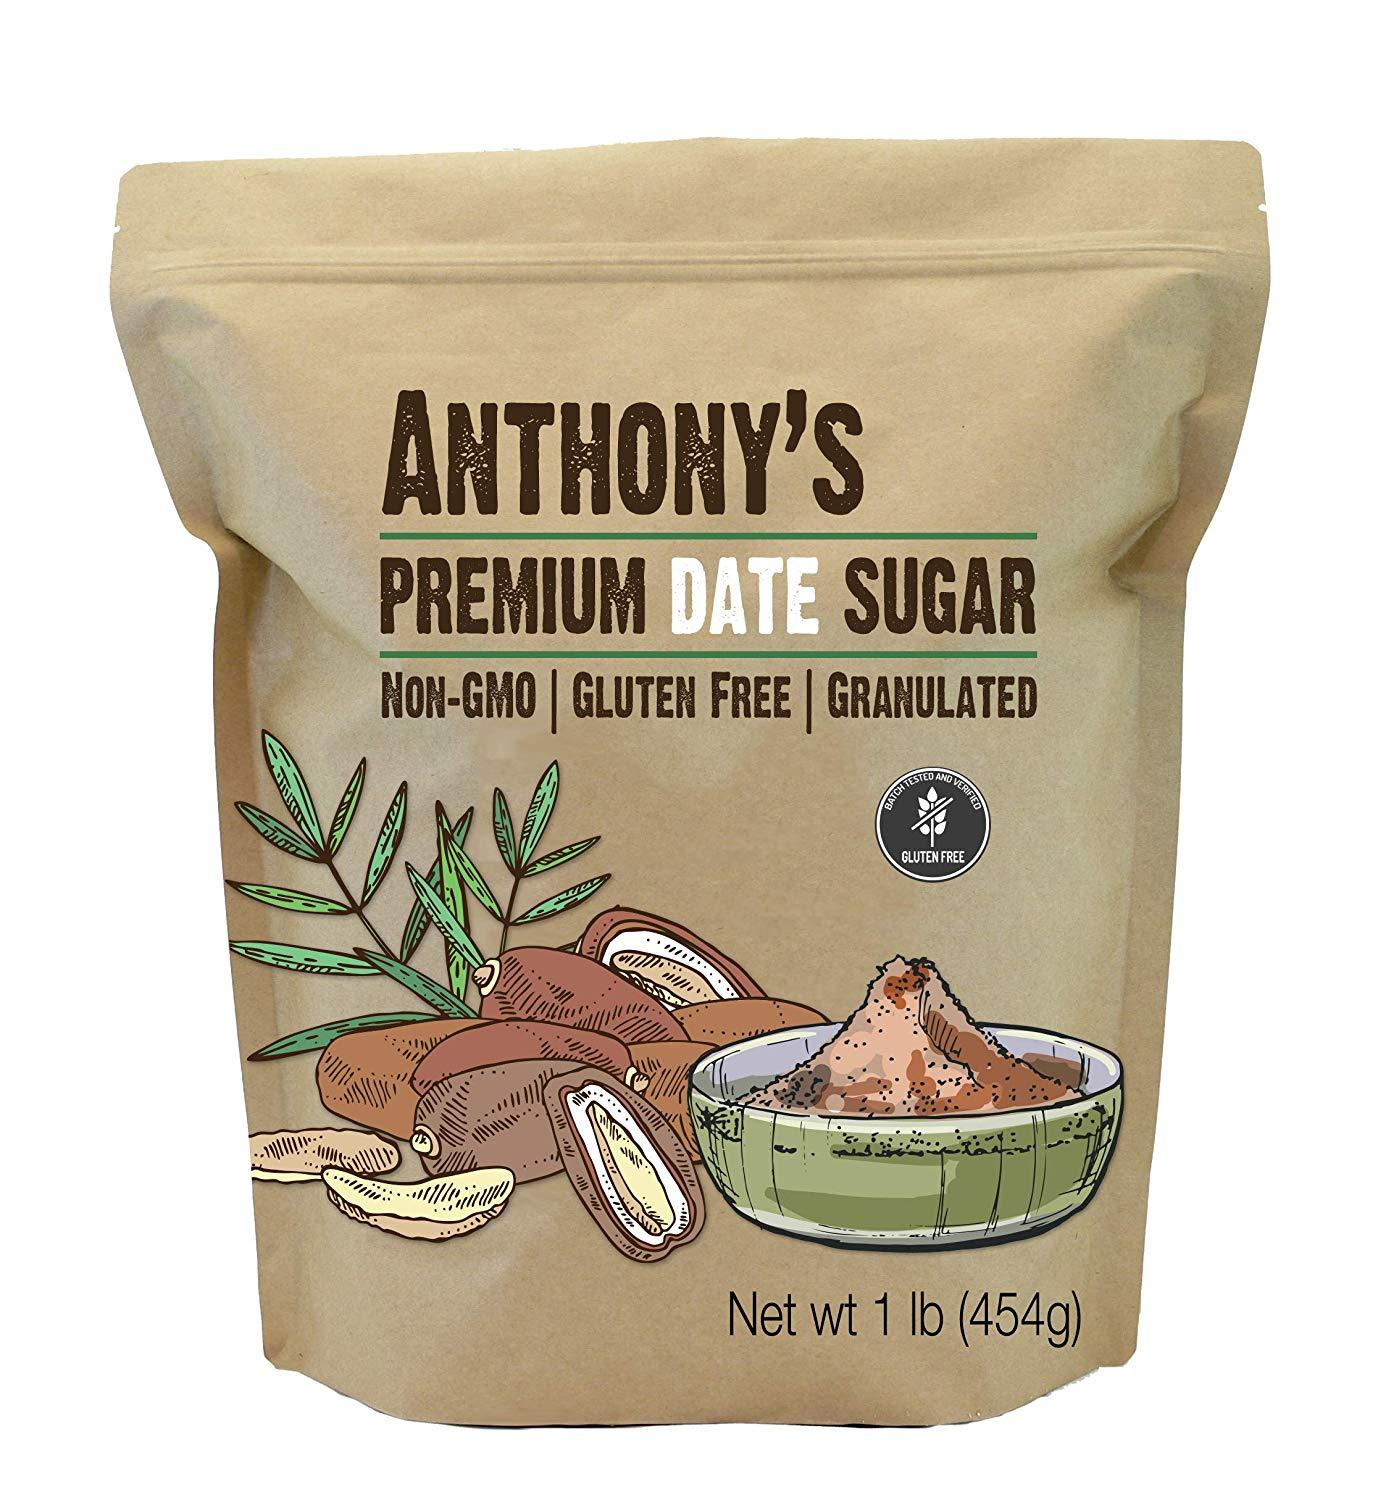 Premium Date Sugar: Batch Tested Gluten Free, Non-GMO, Vegan